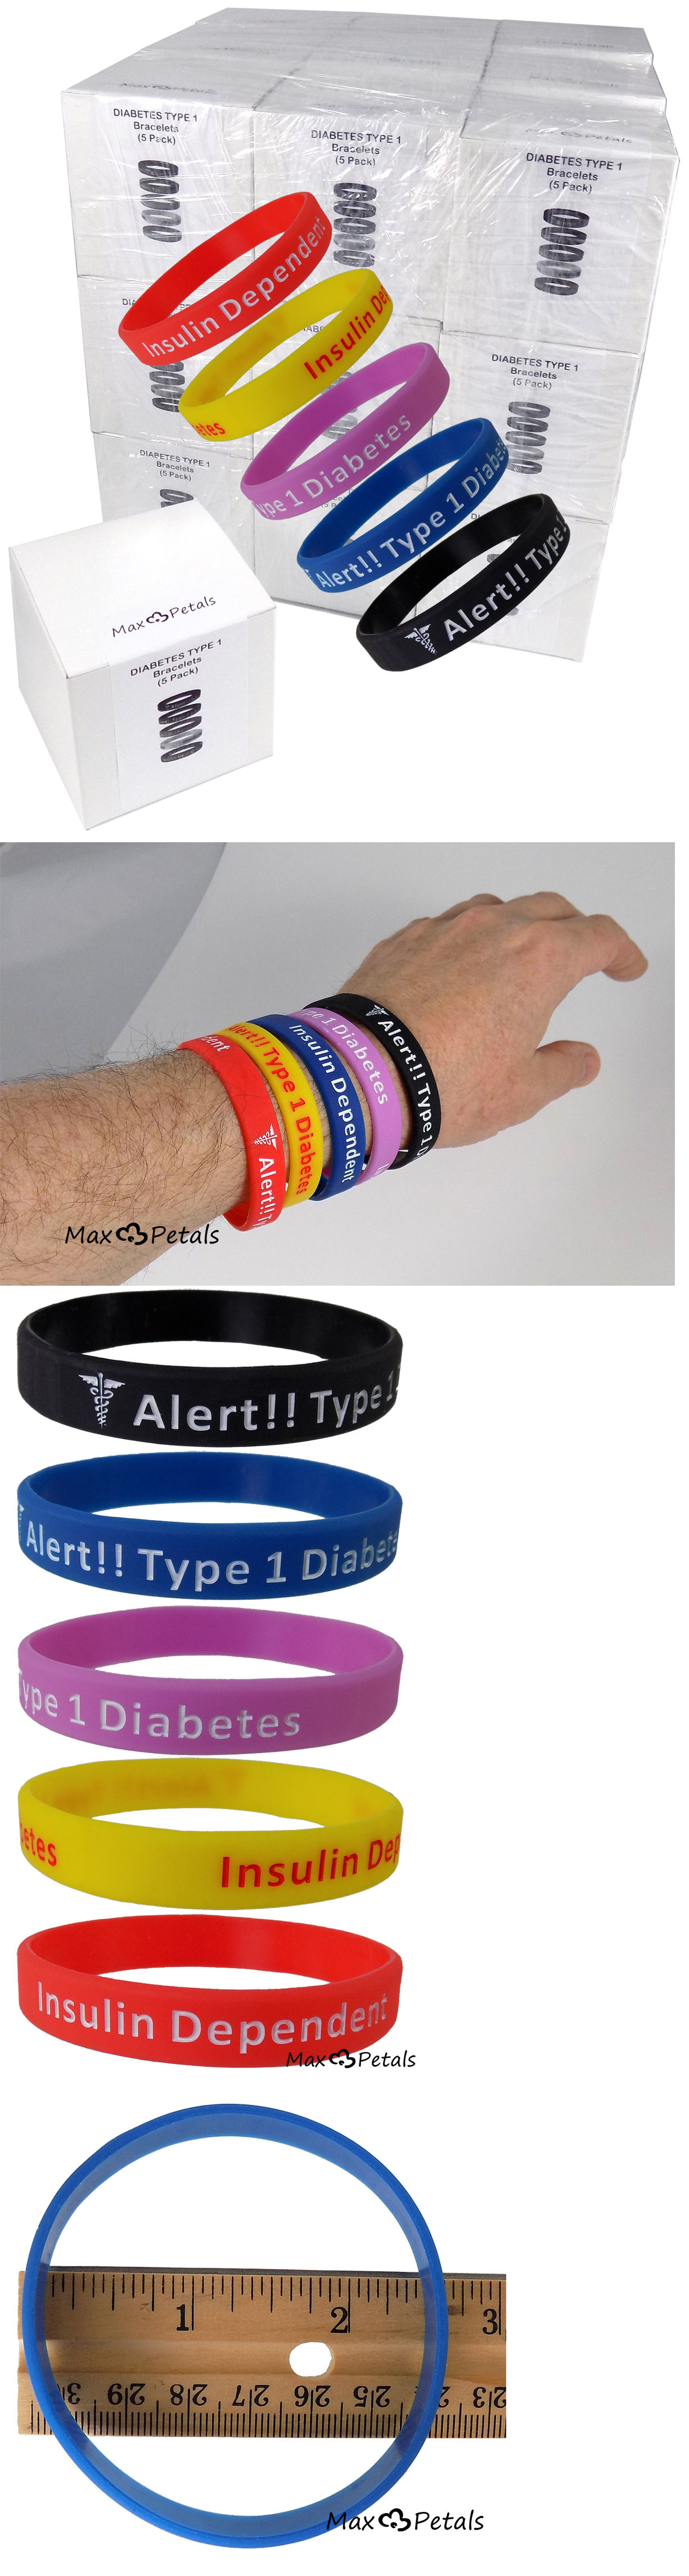 alert img funky size copy diabetes bracelet medical type child small product pumpers